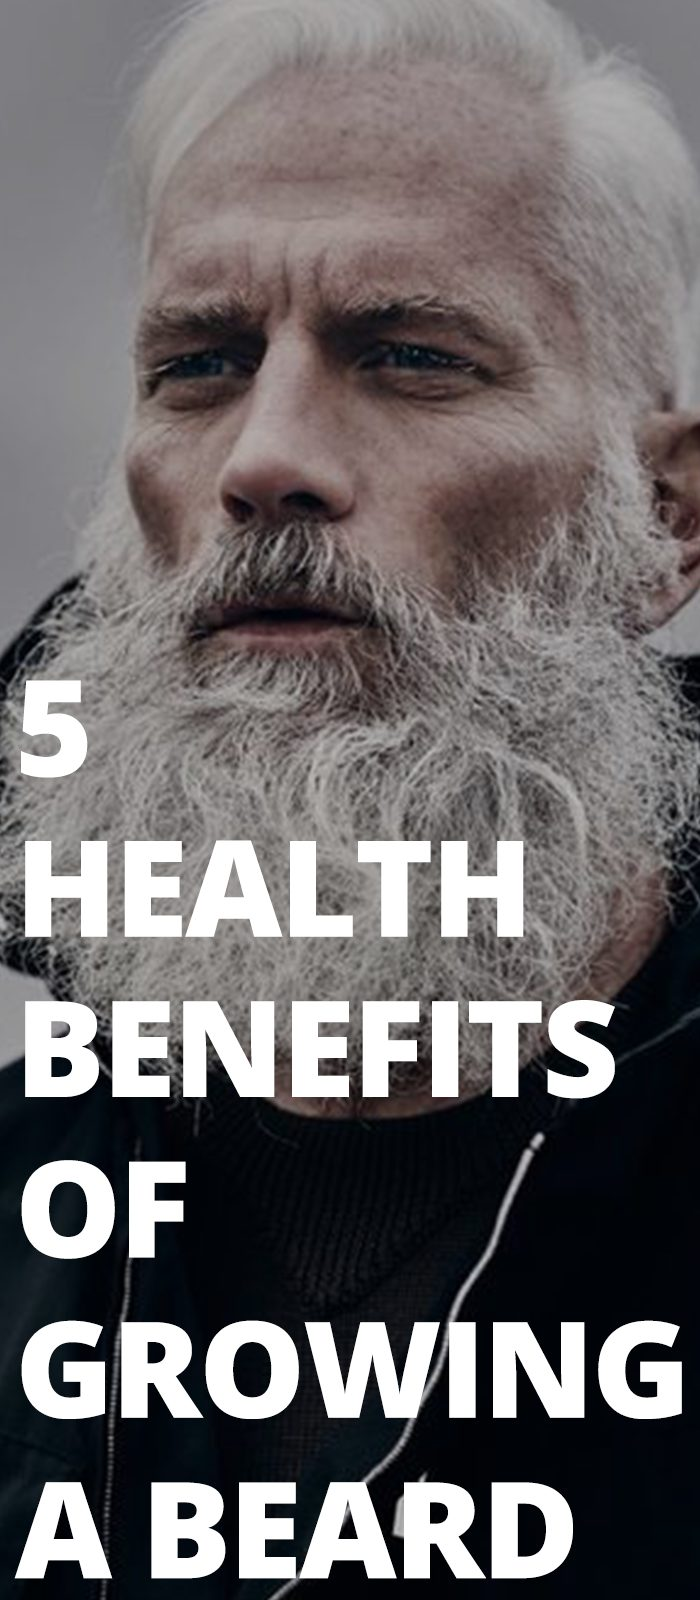 5 Health Benefits Of Growing A Beard